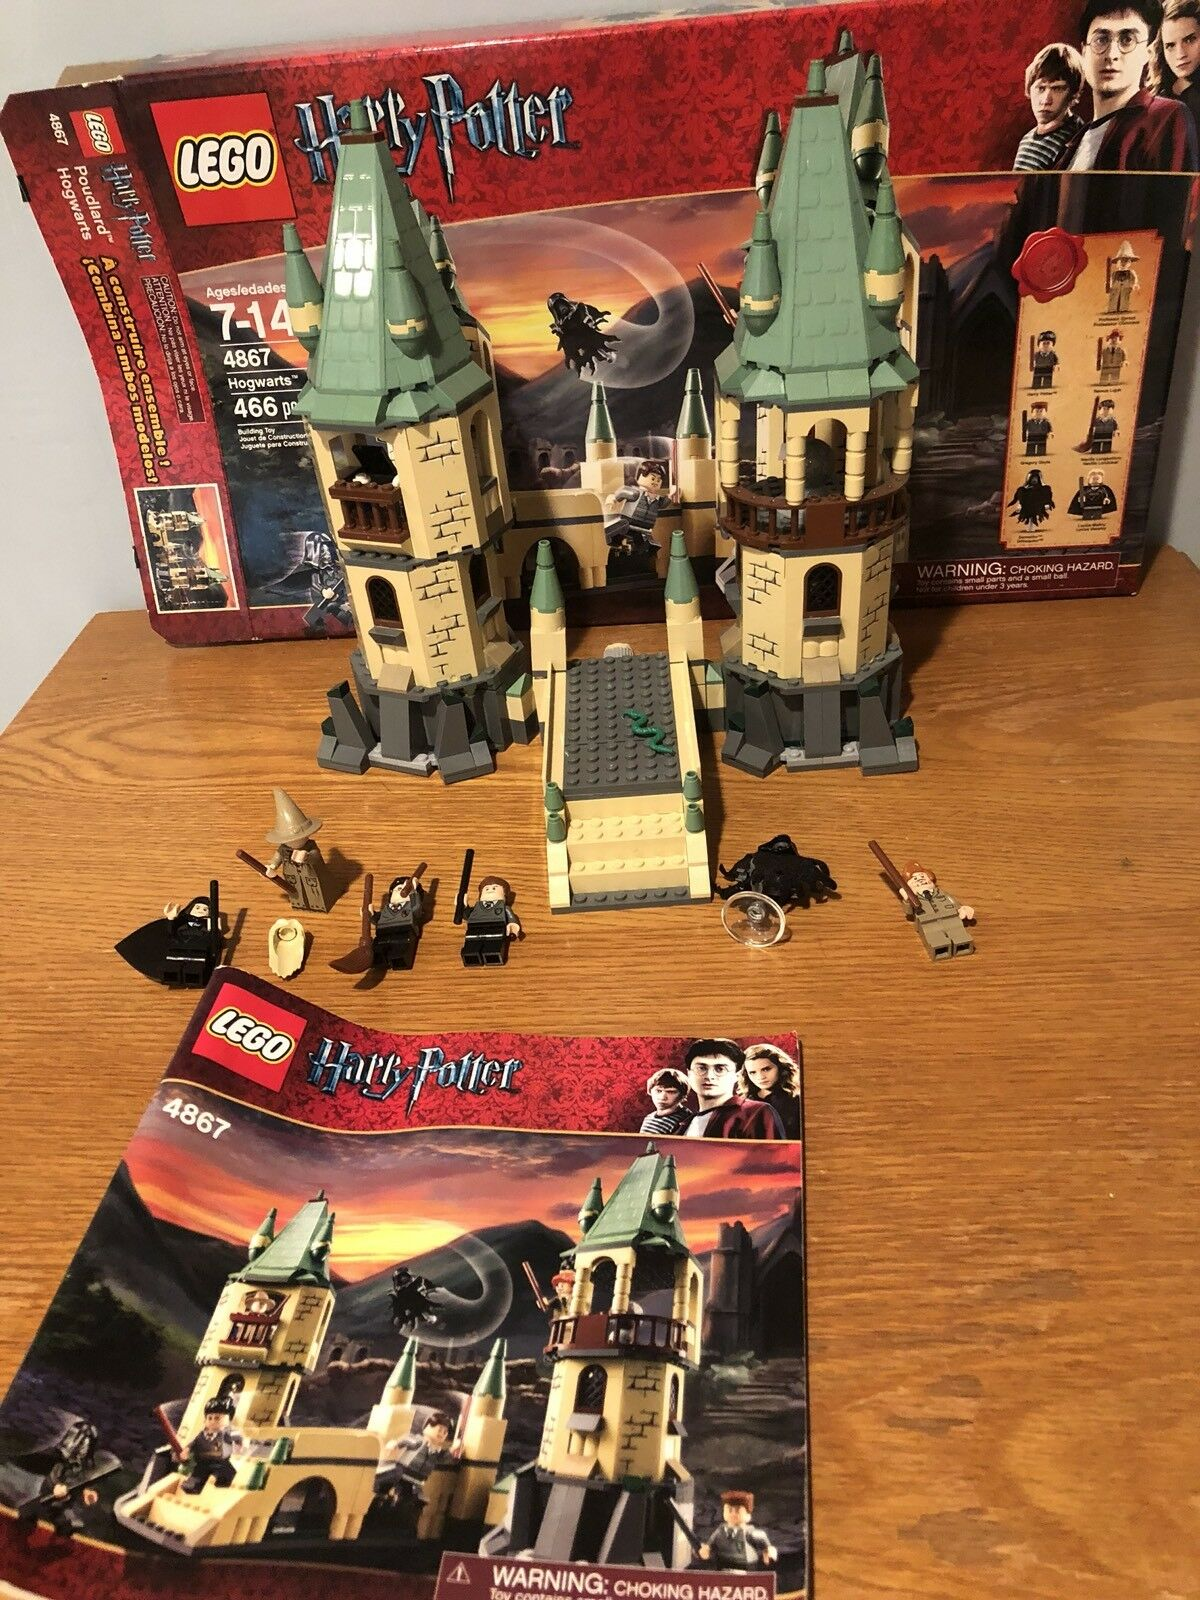 LEGO Harry Potter Hogwarts 4867 100% Complete, MANUAL, box, minifigures